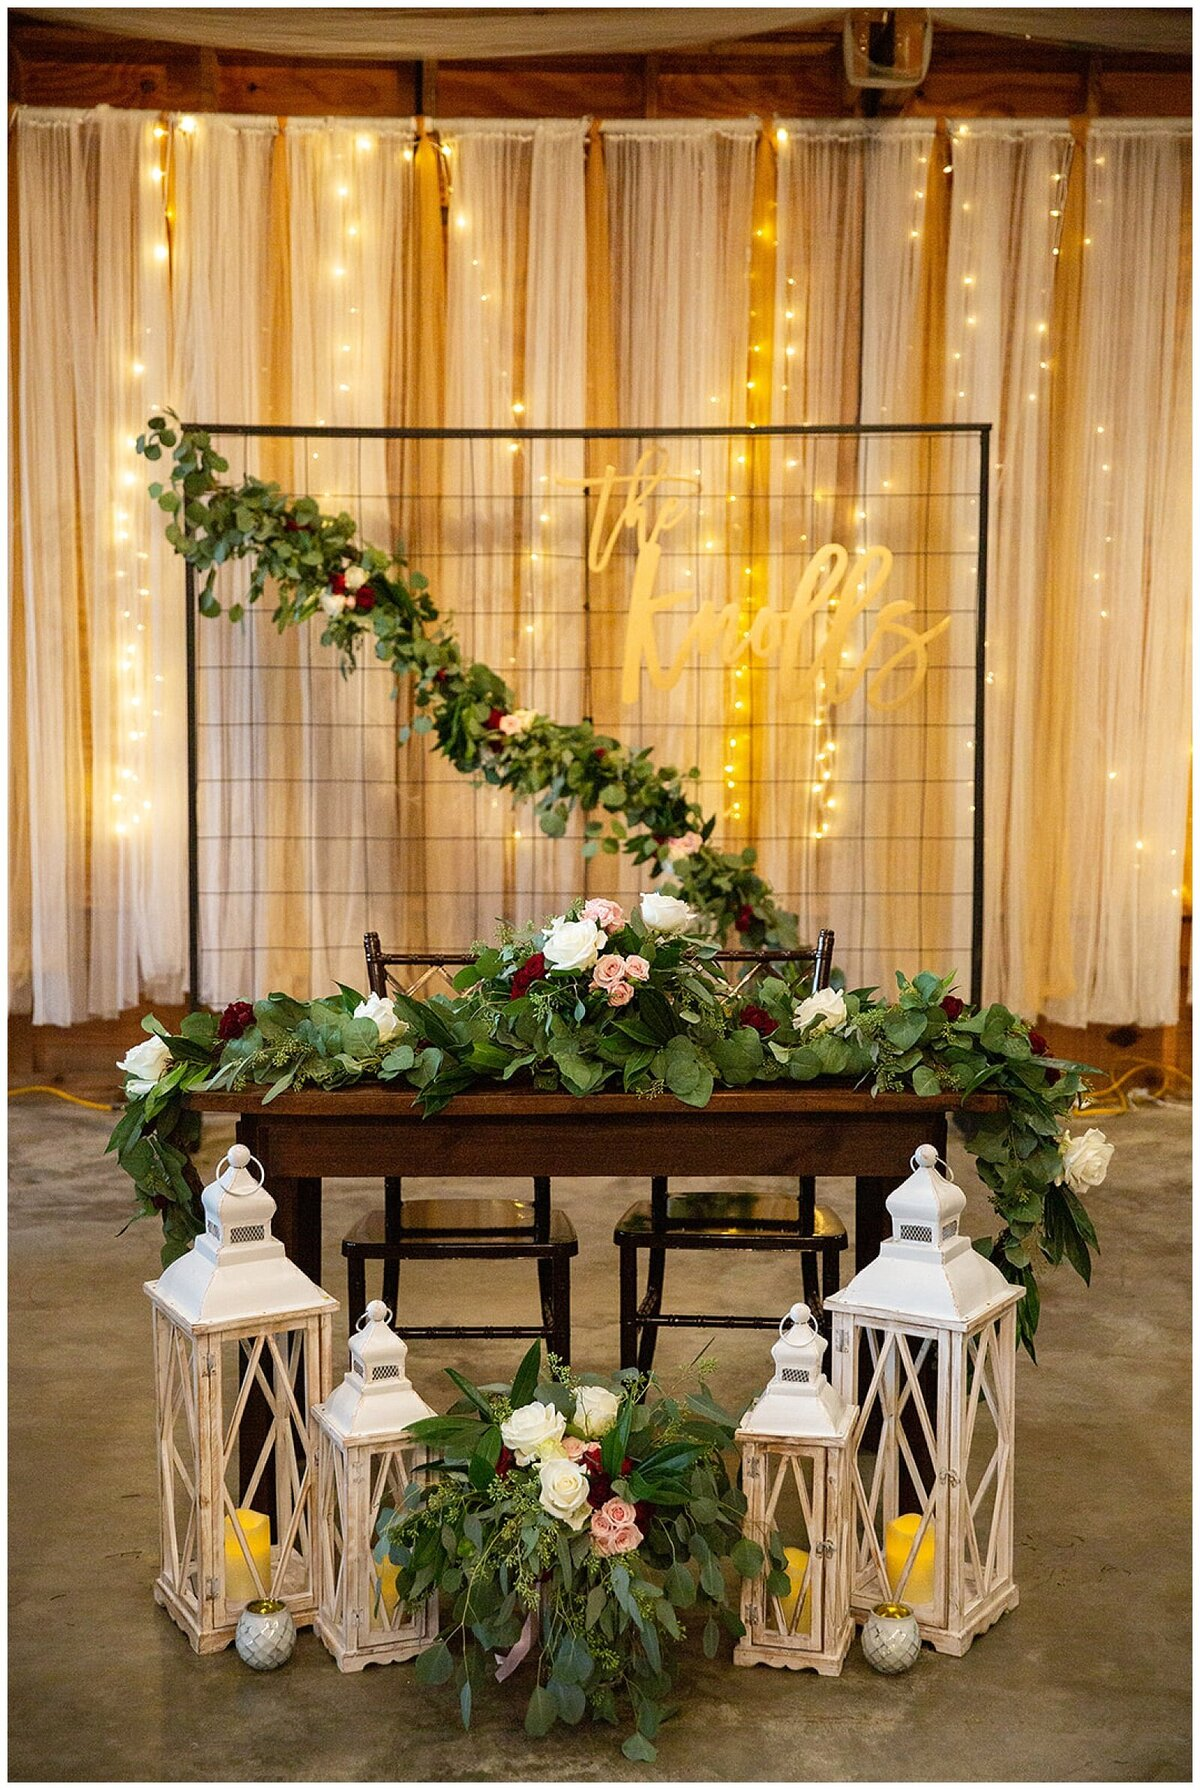 Rustic Greenery Indoor Outdoor Wedding at Emery's Buffalo Creek - Houston Wedding Venue_0130